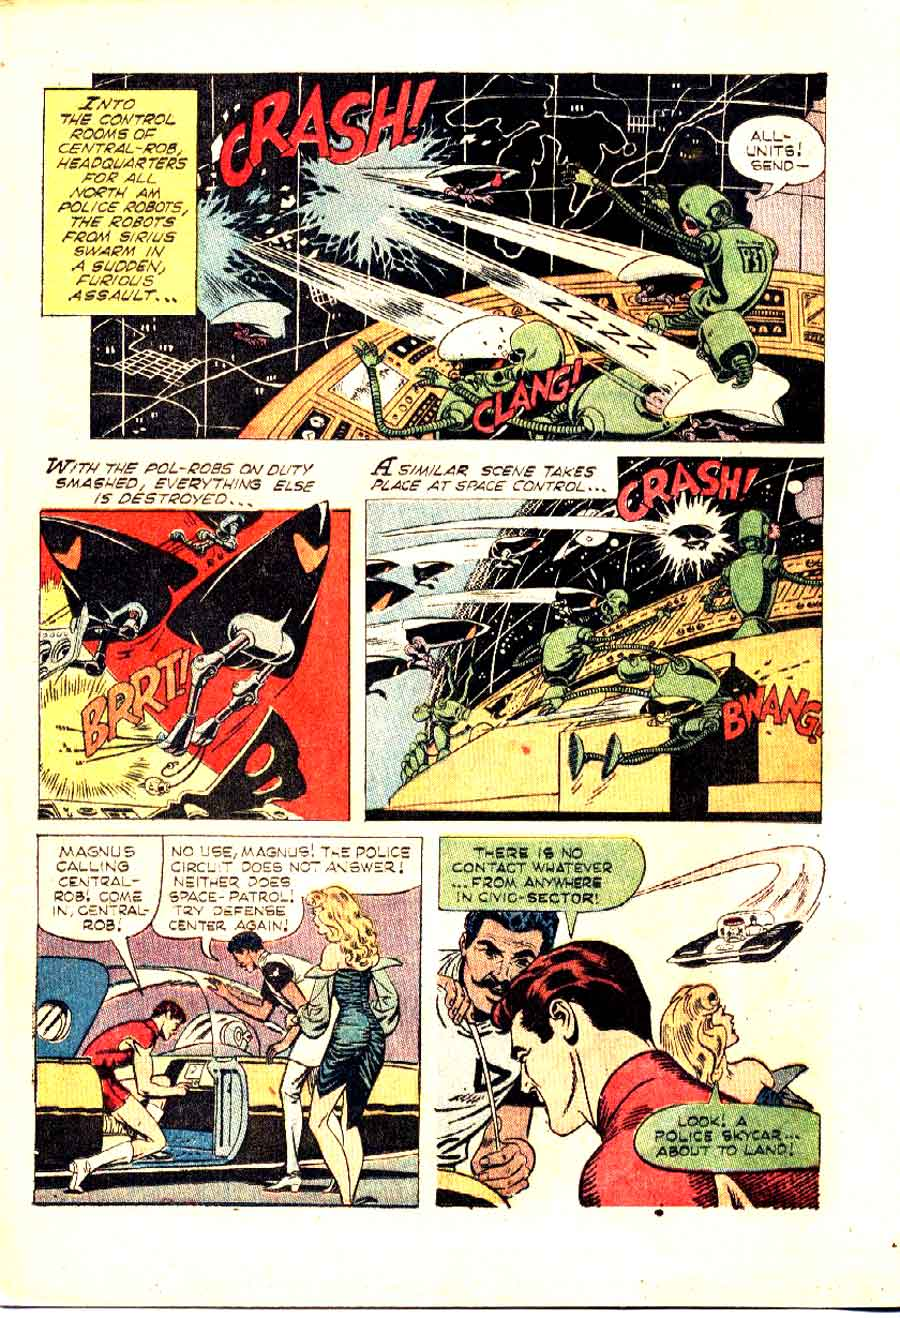 Magnus Robot Fighter v1 #17 gold key silver age 1960s comic book page art by Russ Manning